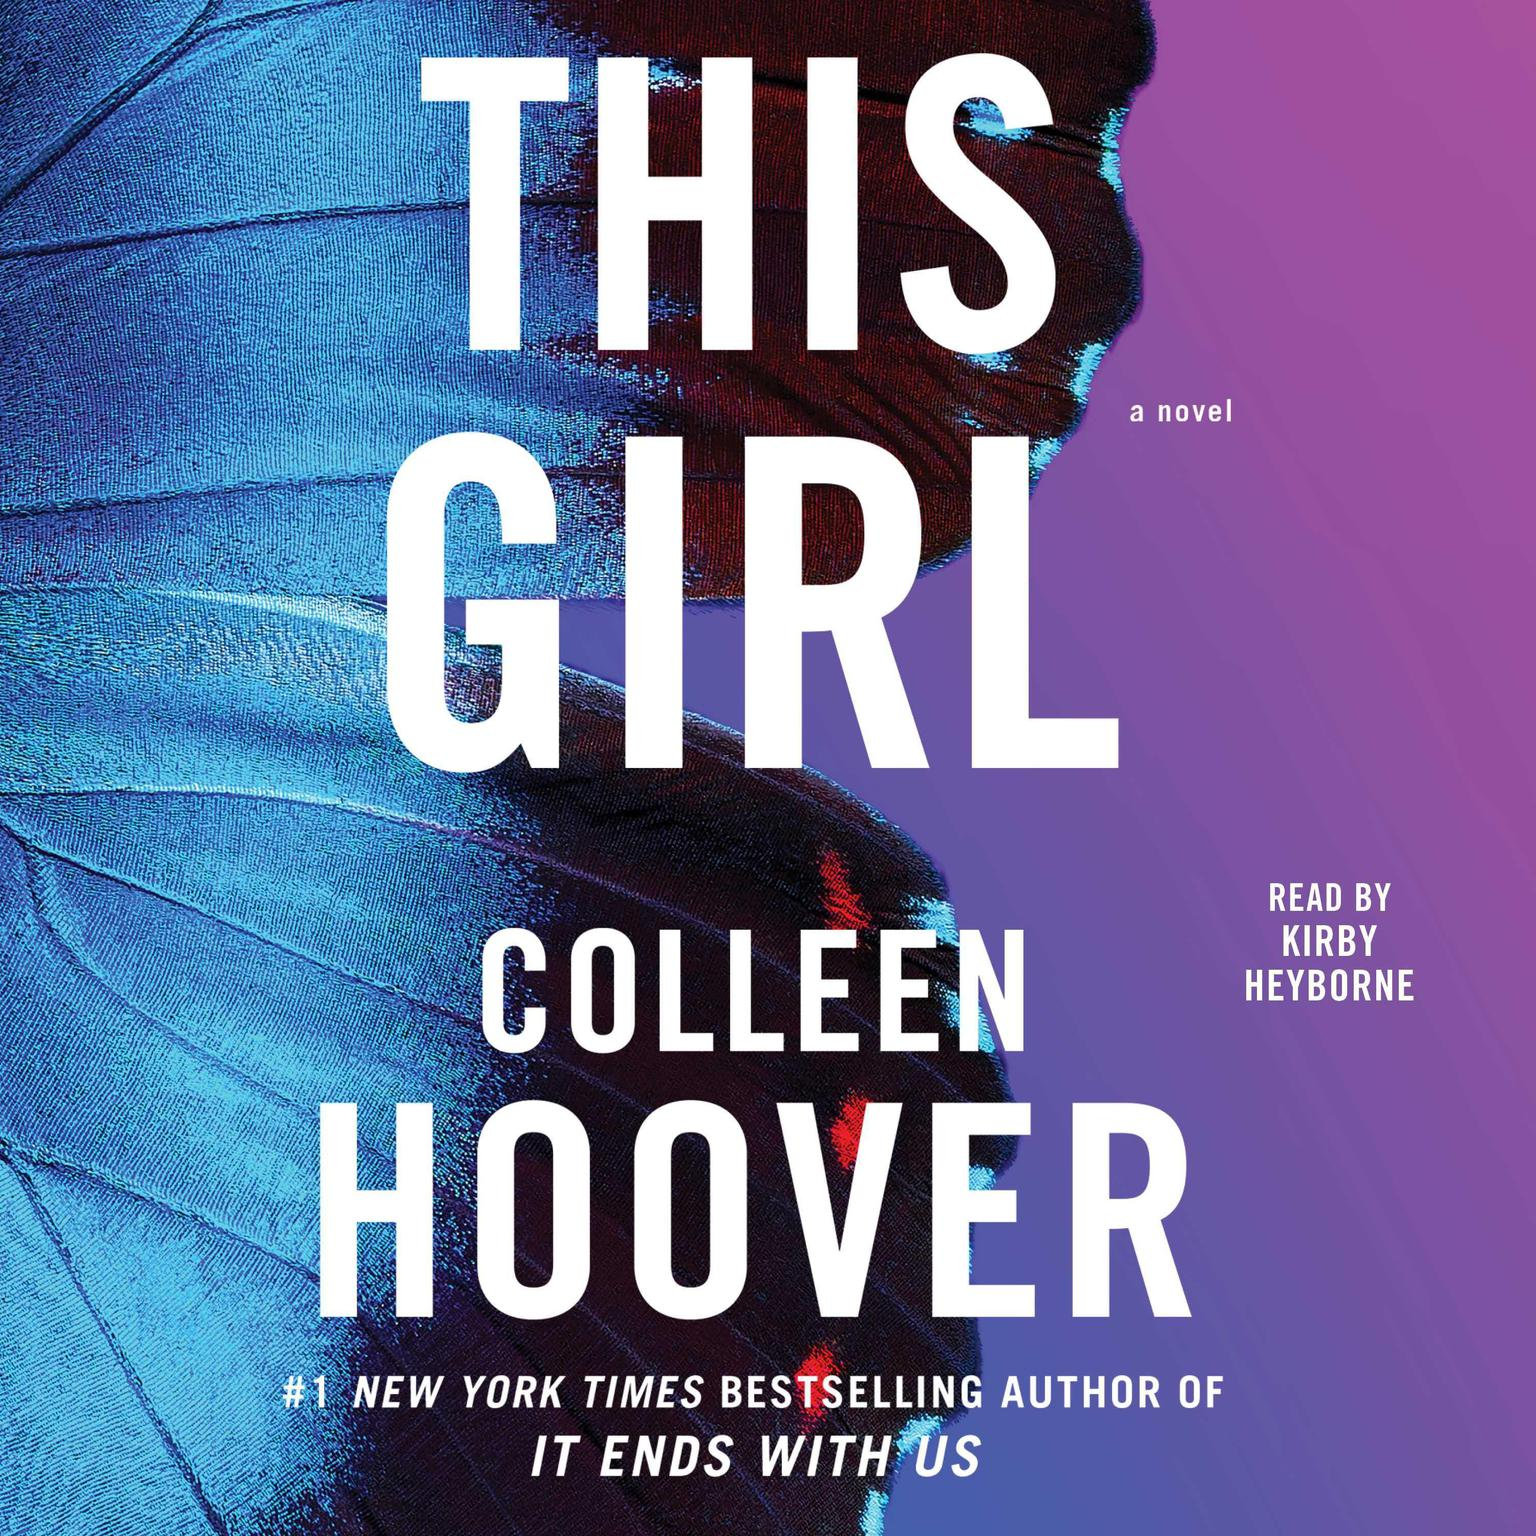 Printable This Girl: A Novel Audiobook Cover Art